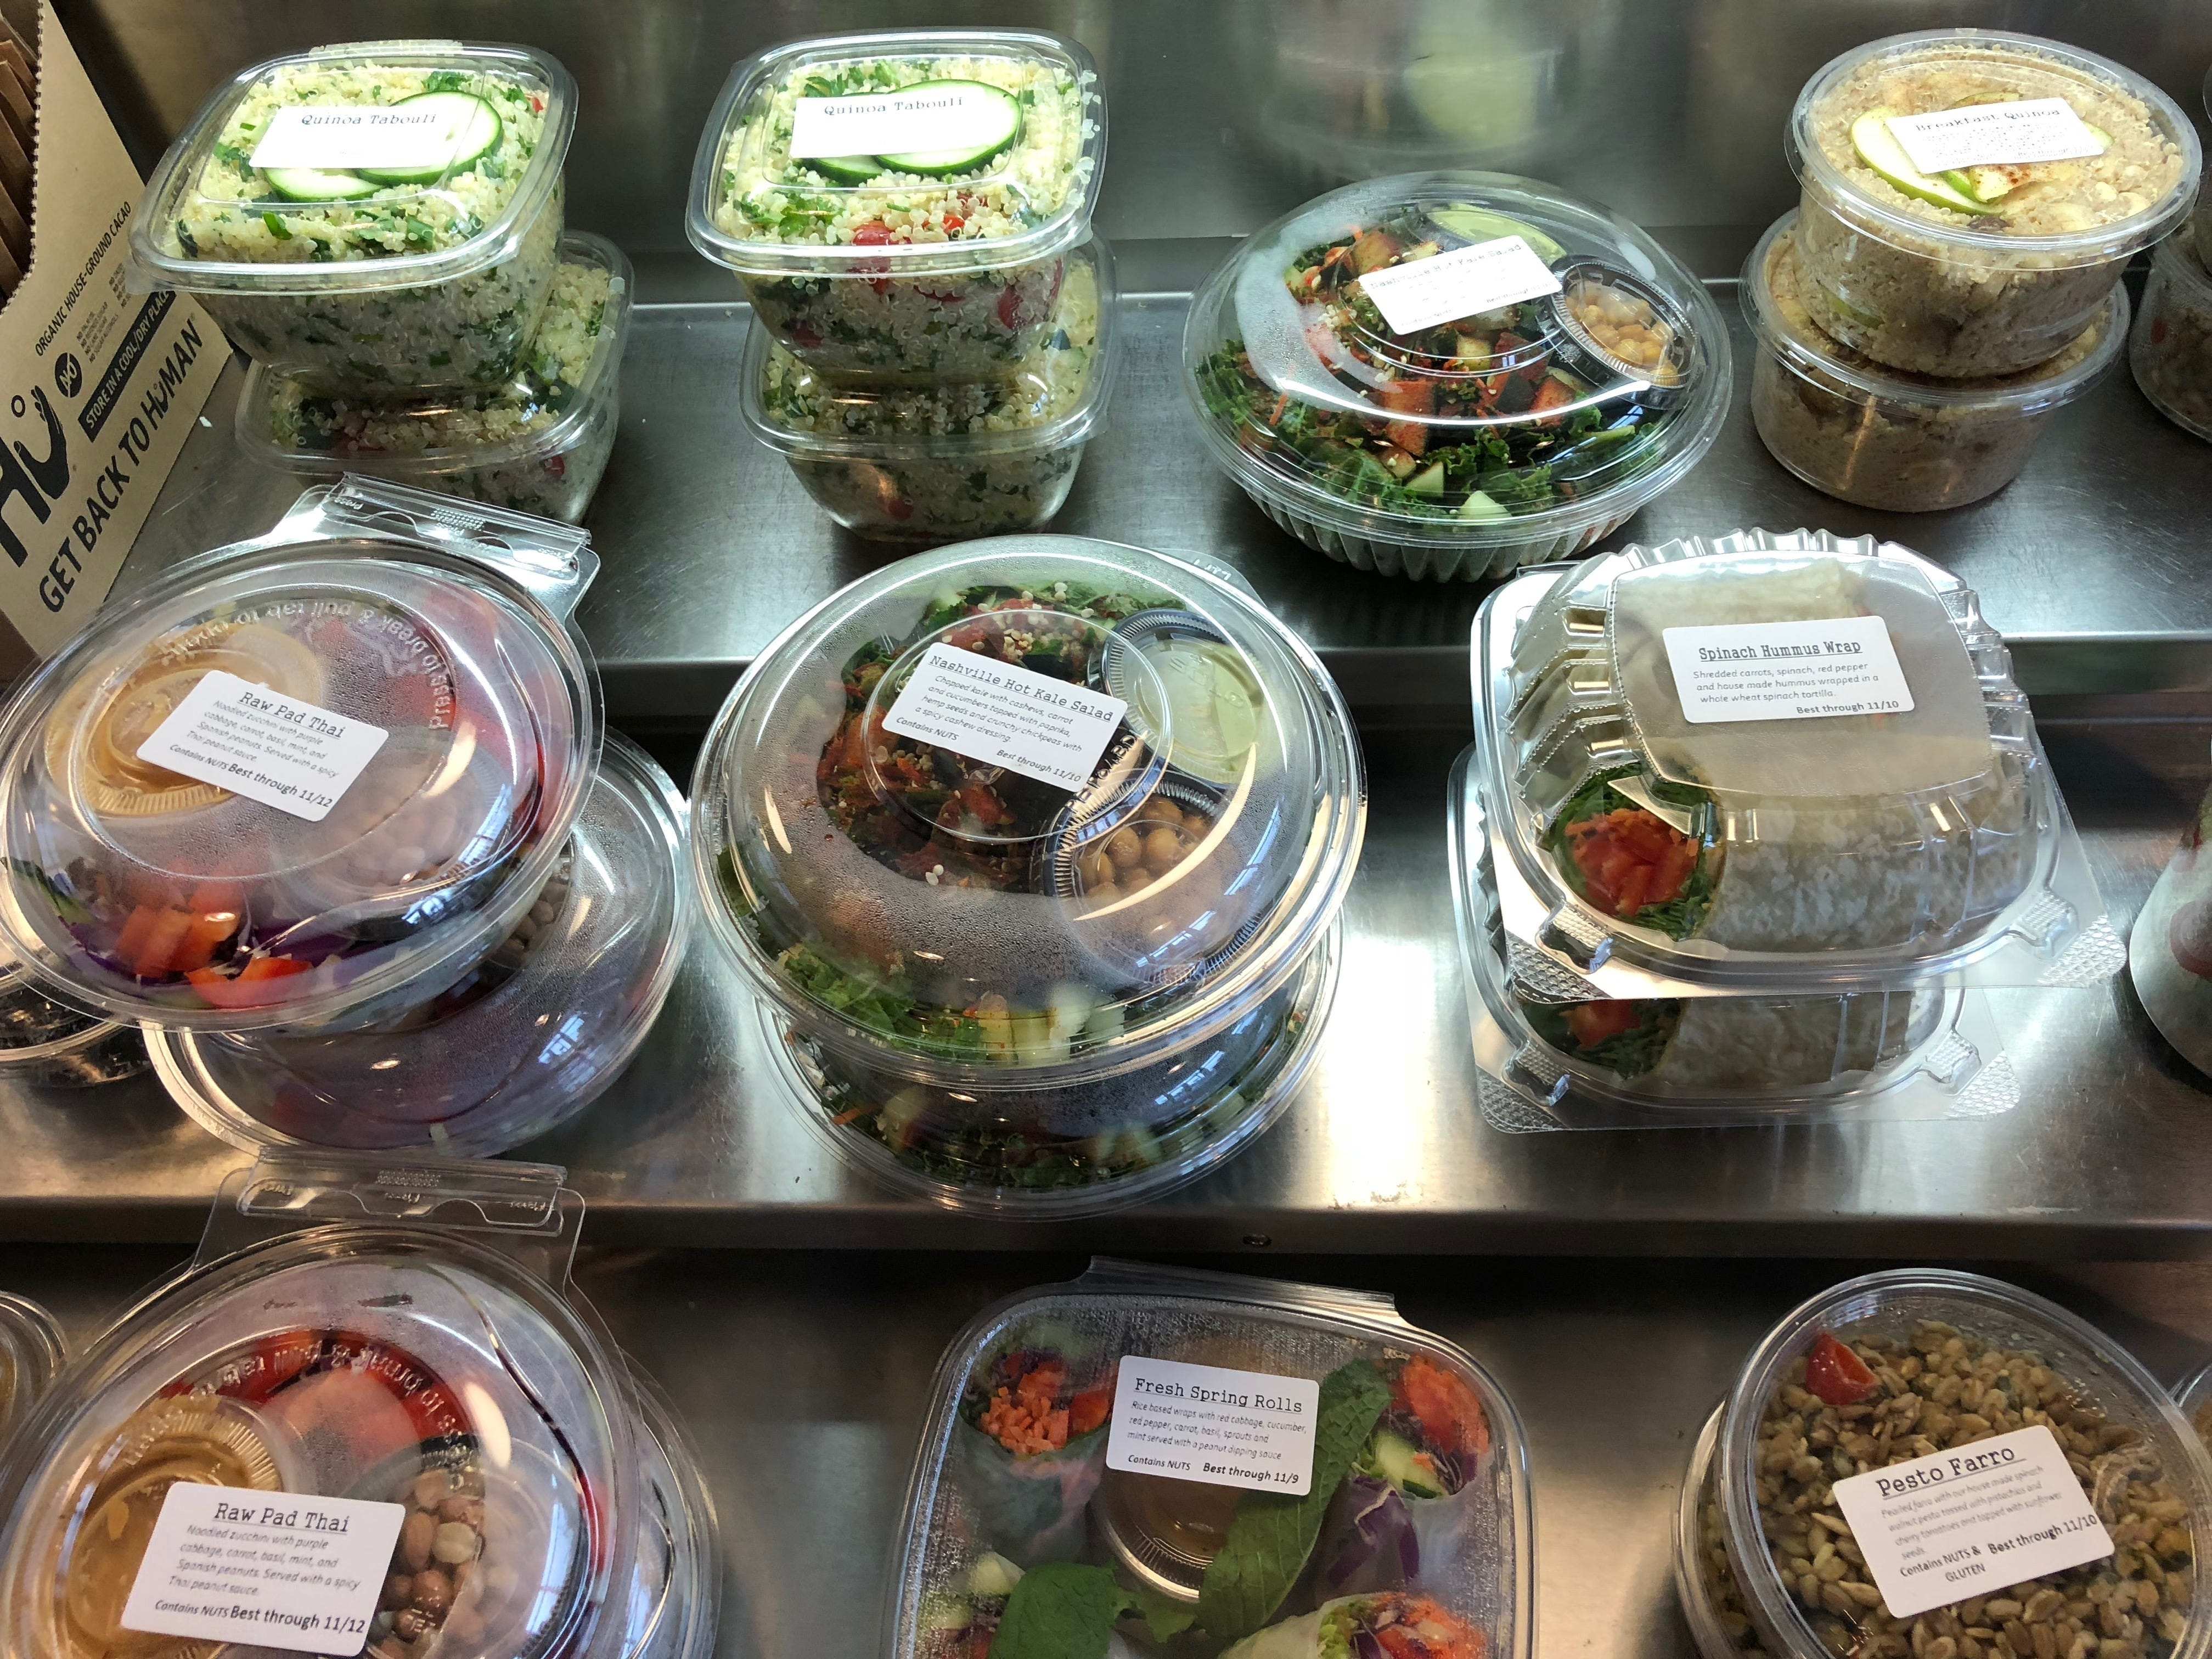 The grab-and-go case at E + Rose has salads, wraps and sides pre-made and ready for those wanting to eat healthy on the run.